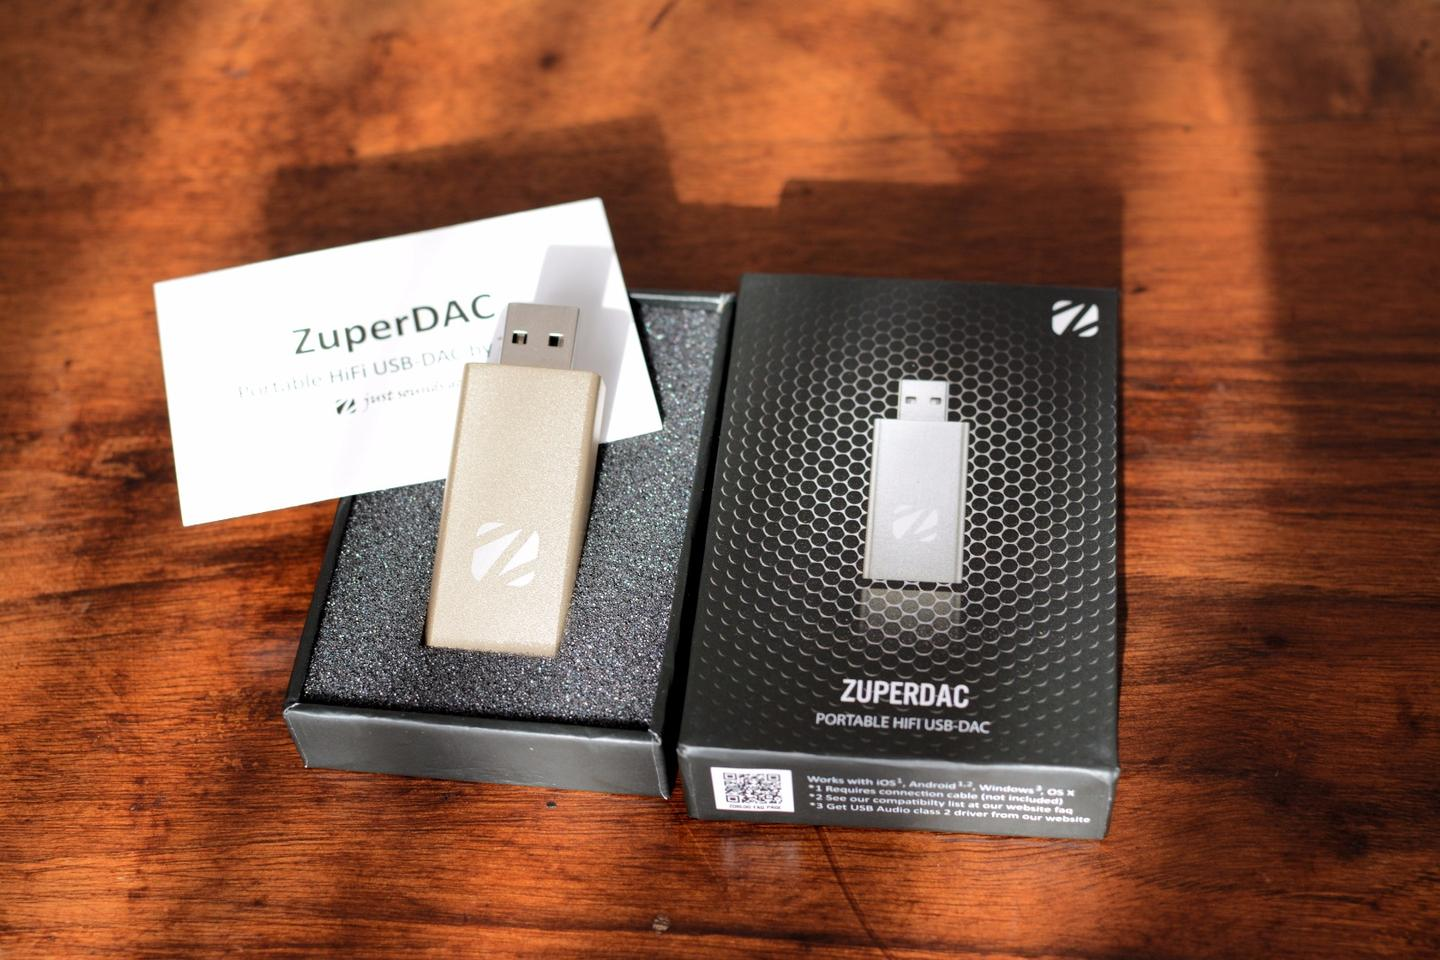 The 46 x 23 x 10 mm (1.8 x 0.9 x 0.39 in), 16 g (0.56 oz) ZuperDAC digital-to-analog converter and headphone amp